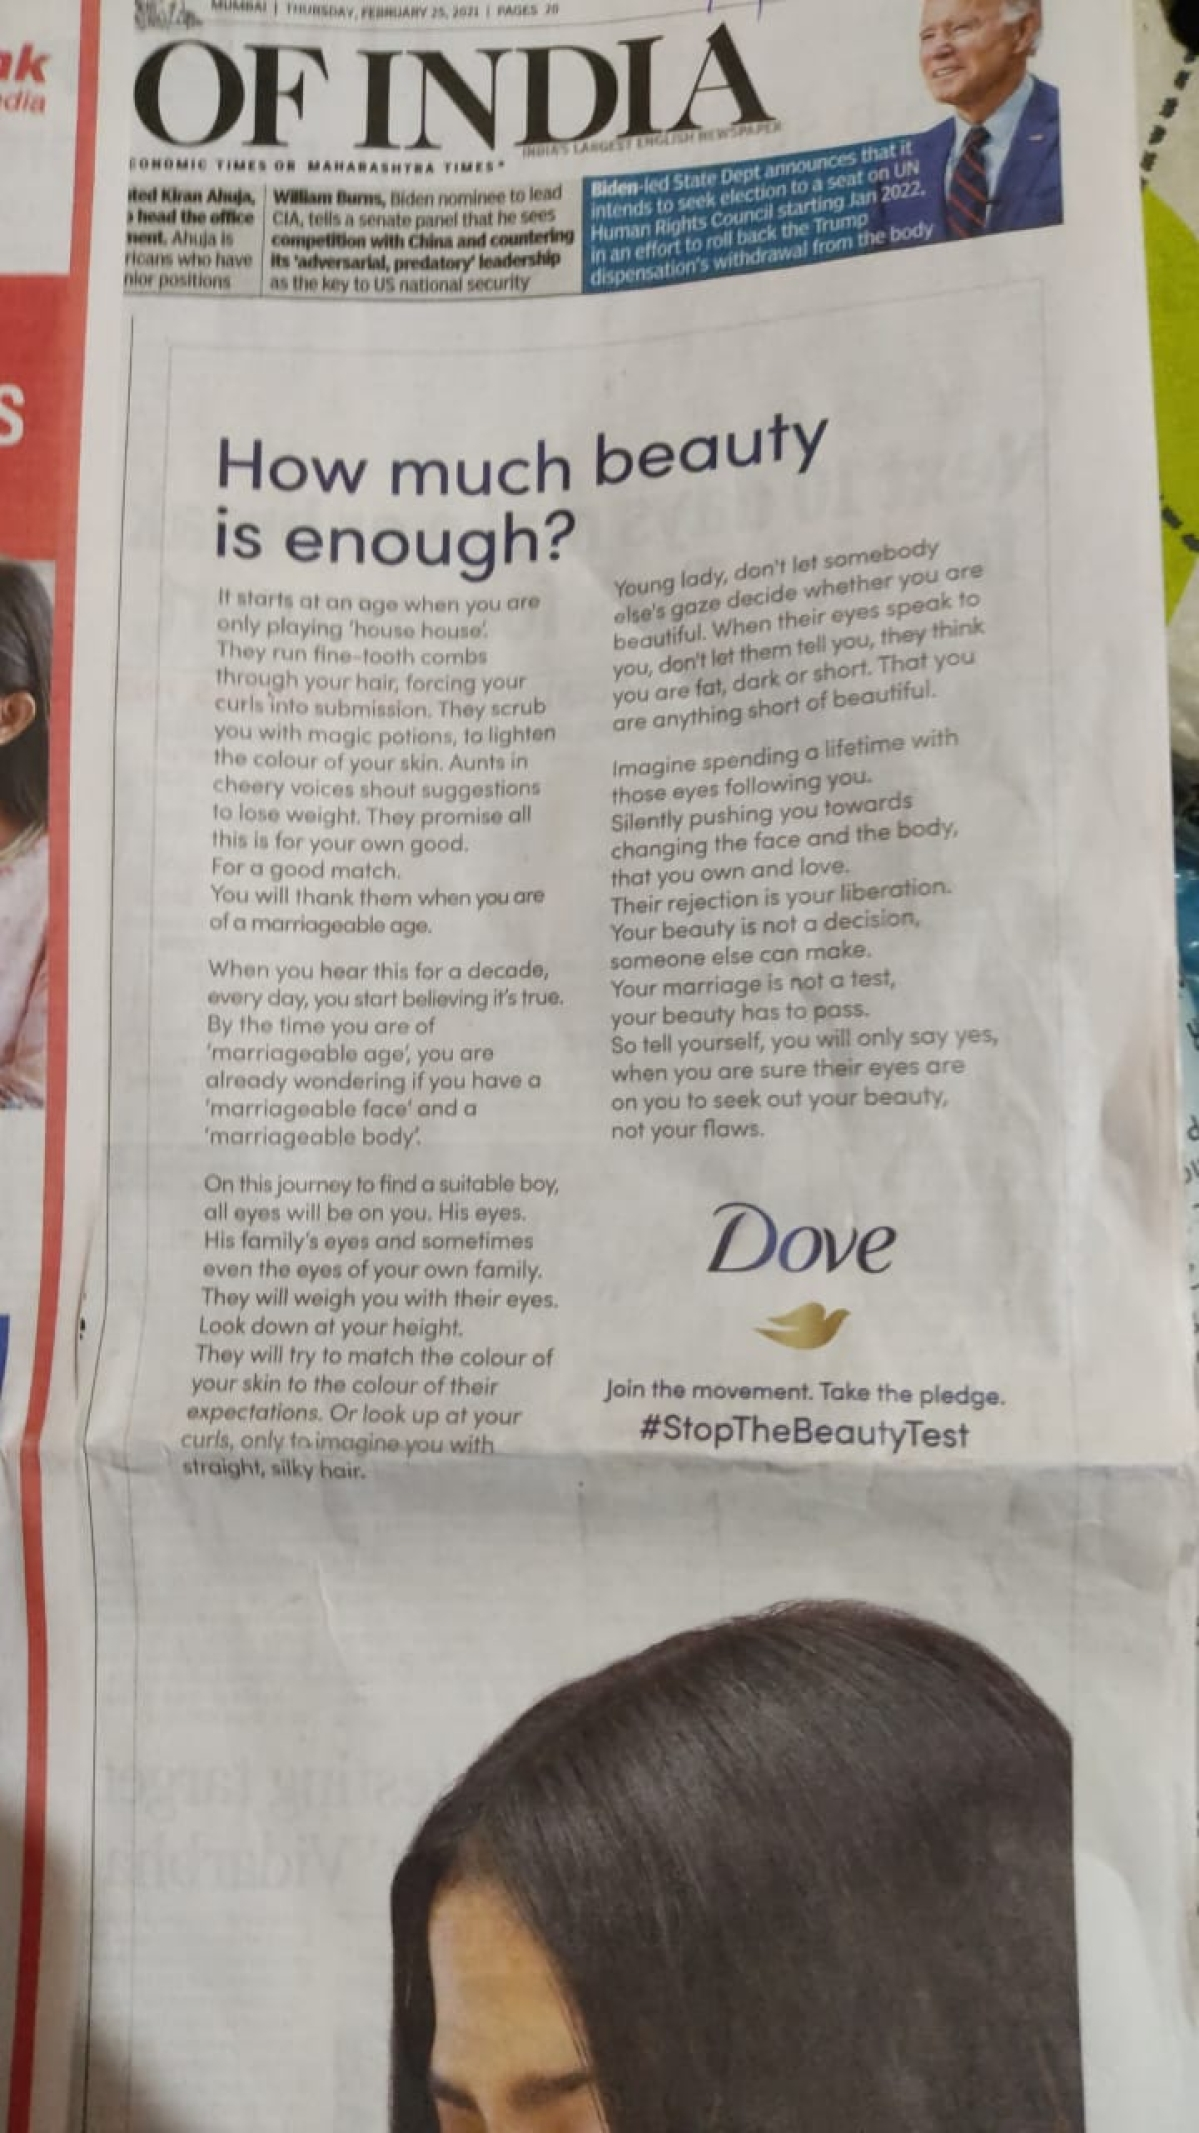 Dove soap calls out pre-marriage scrutiny of bride's weight, height, colour, hair; takes 'Real Beauty' stance ahead